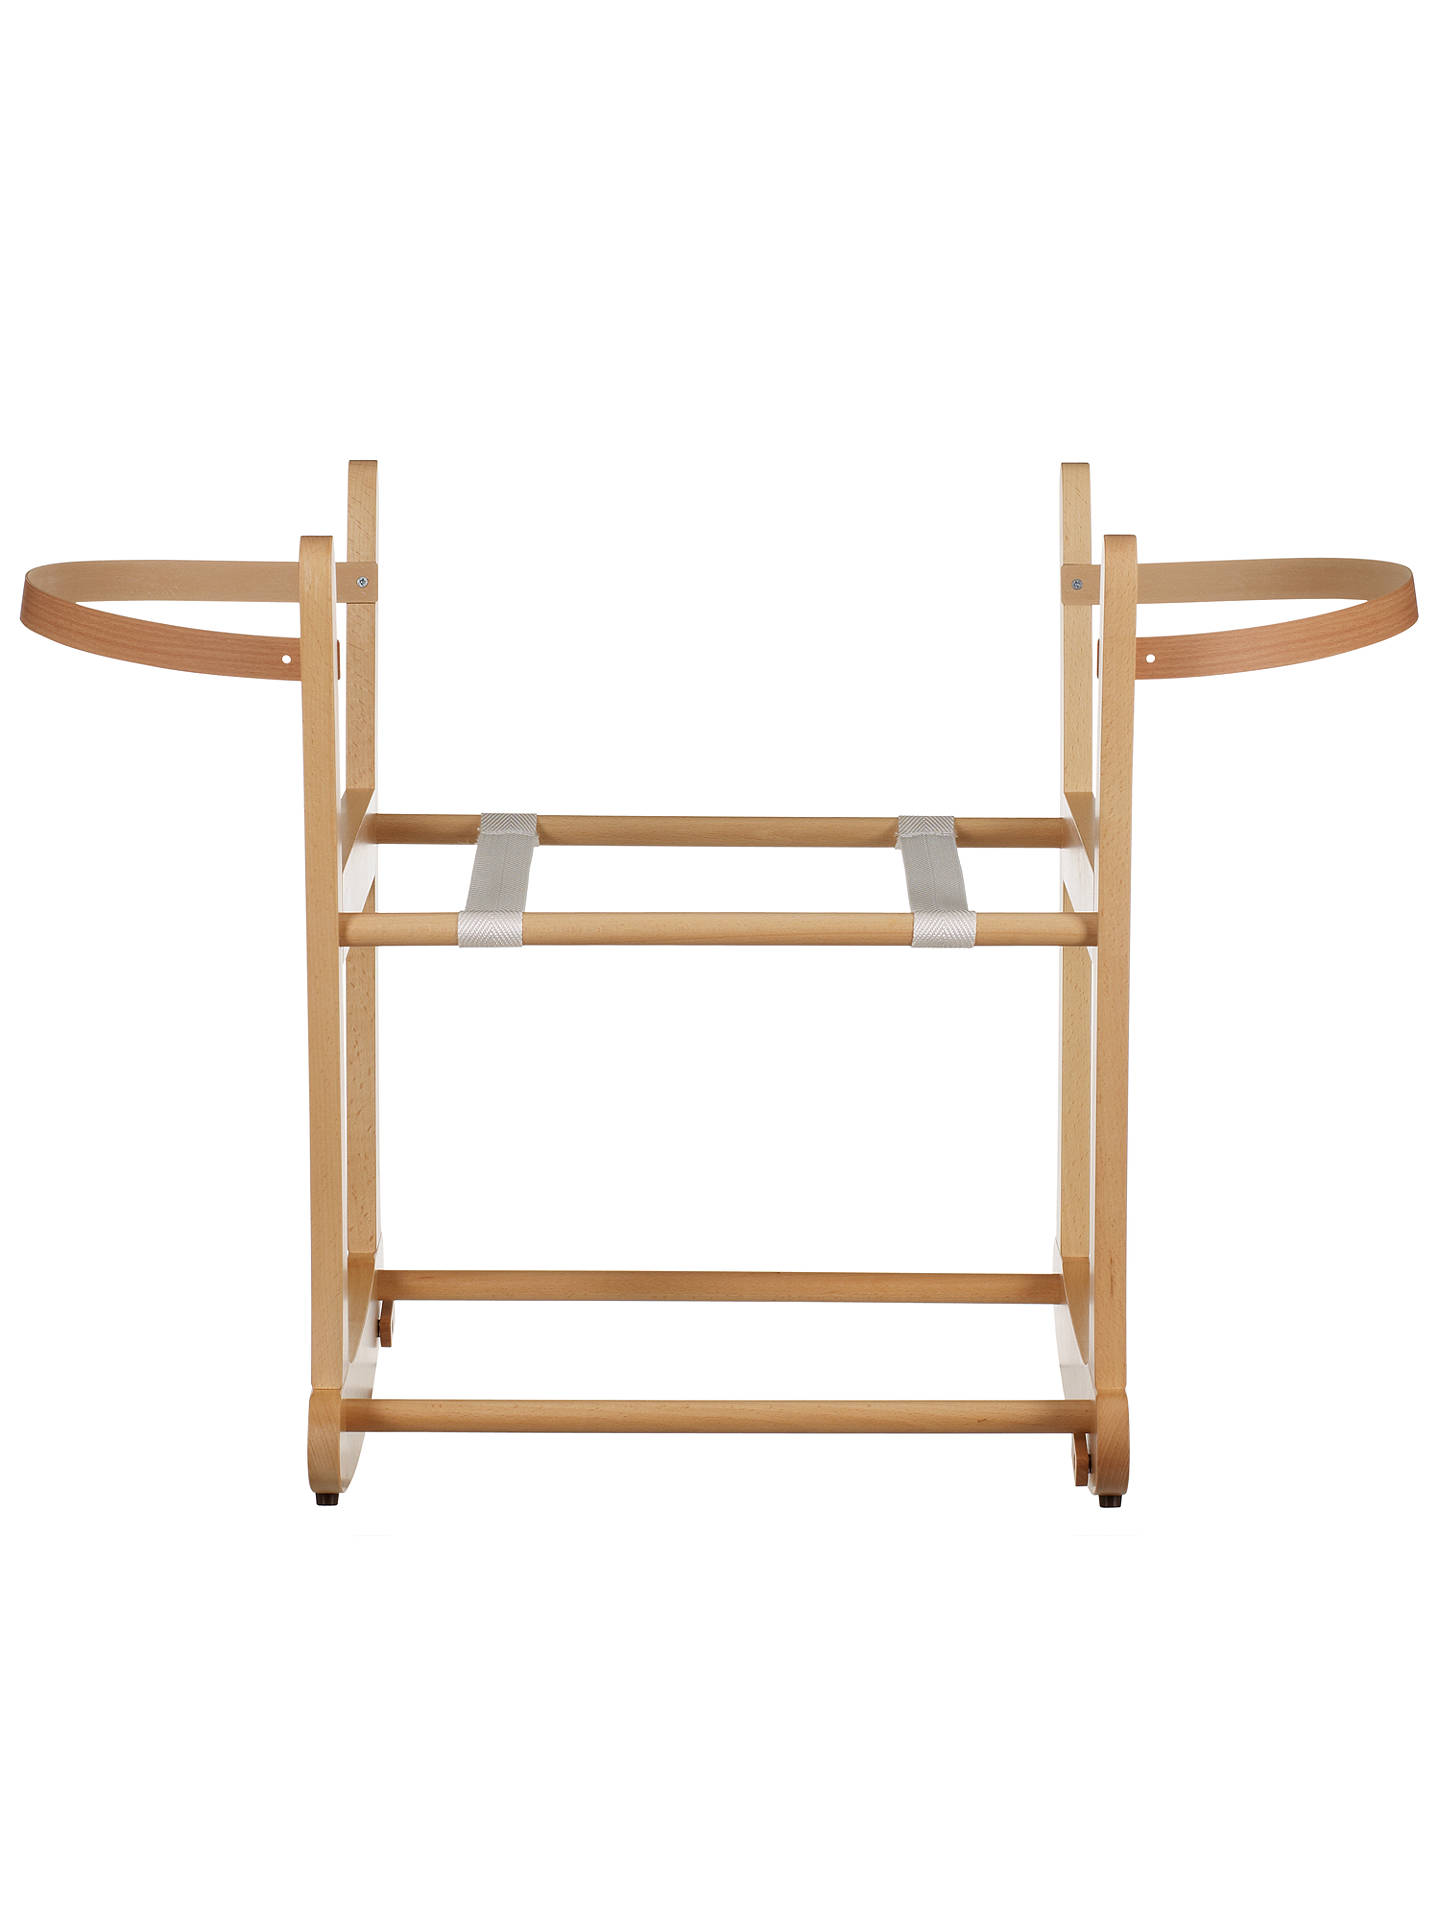 9cde83f6a2e9 Buy John Lewis & Partners Rocking Moses Basket Stand, Natural Online at  johnlewis.com